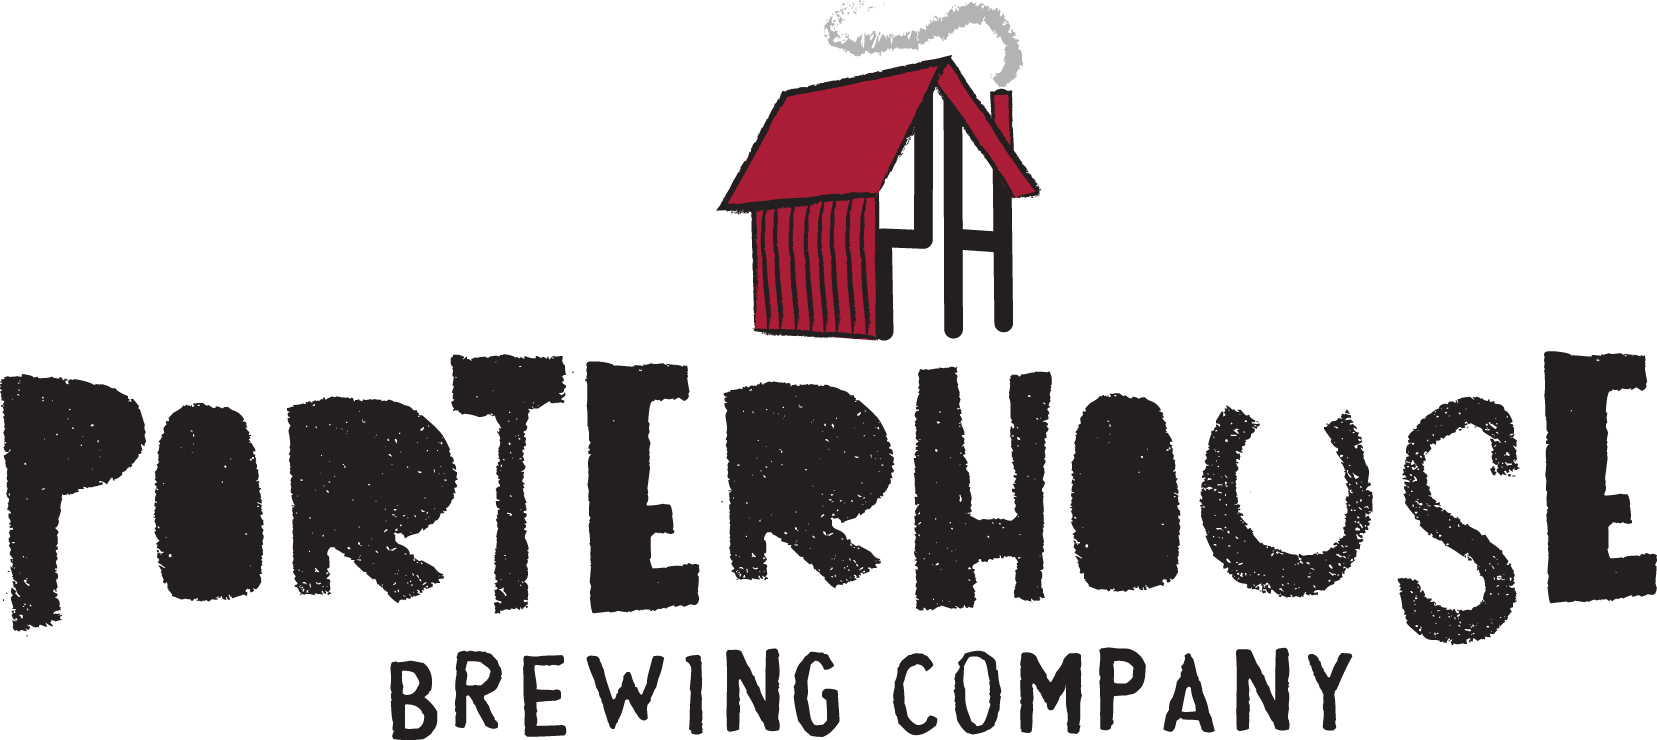 the porterhouse logo